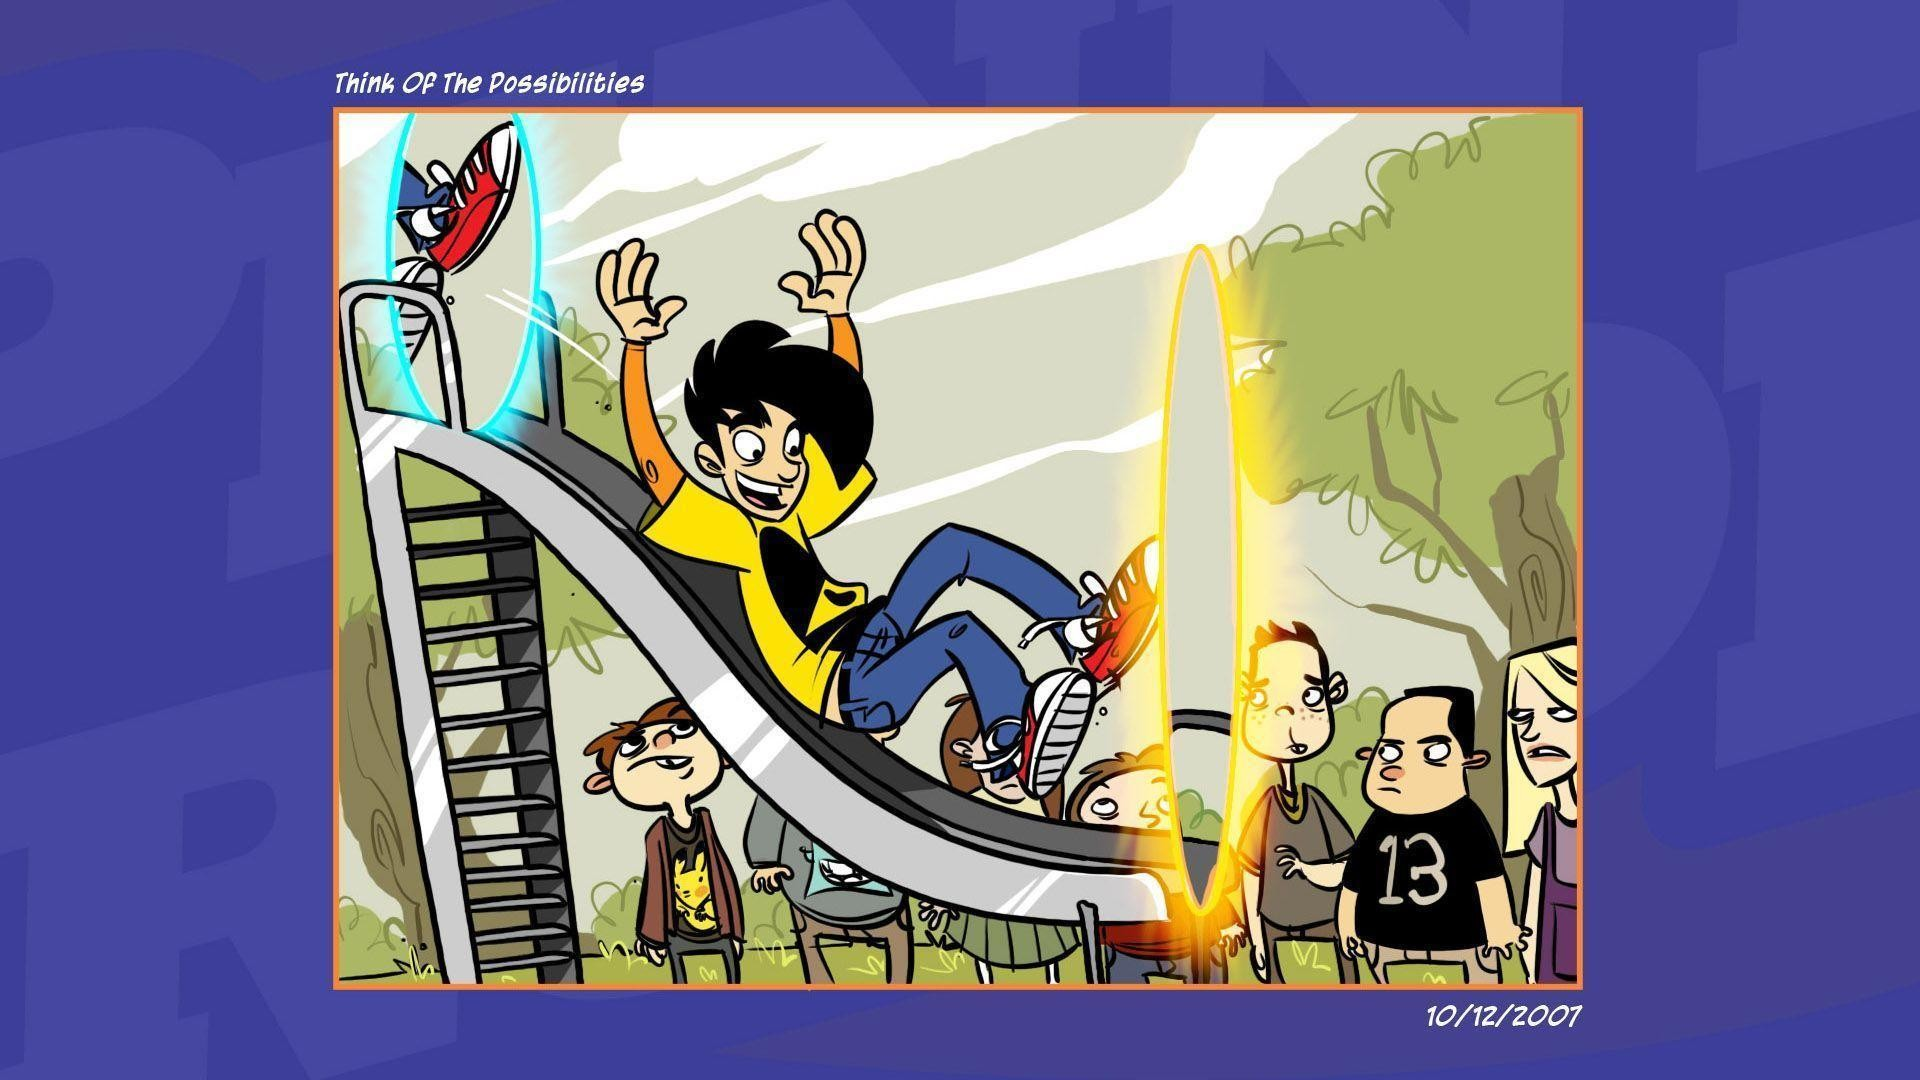 Penny Arcade Wallpaper 143695 High Definition Wallpapers   Suwall.